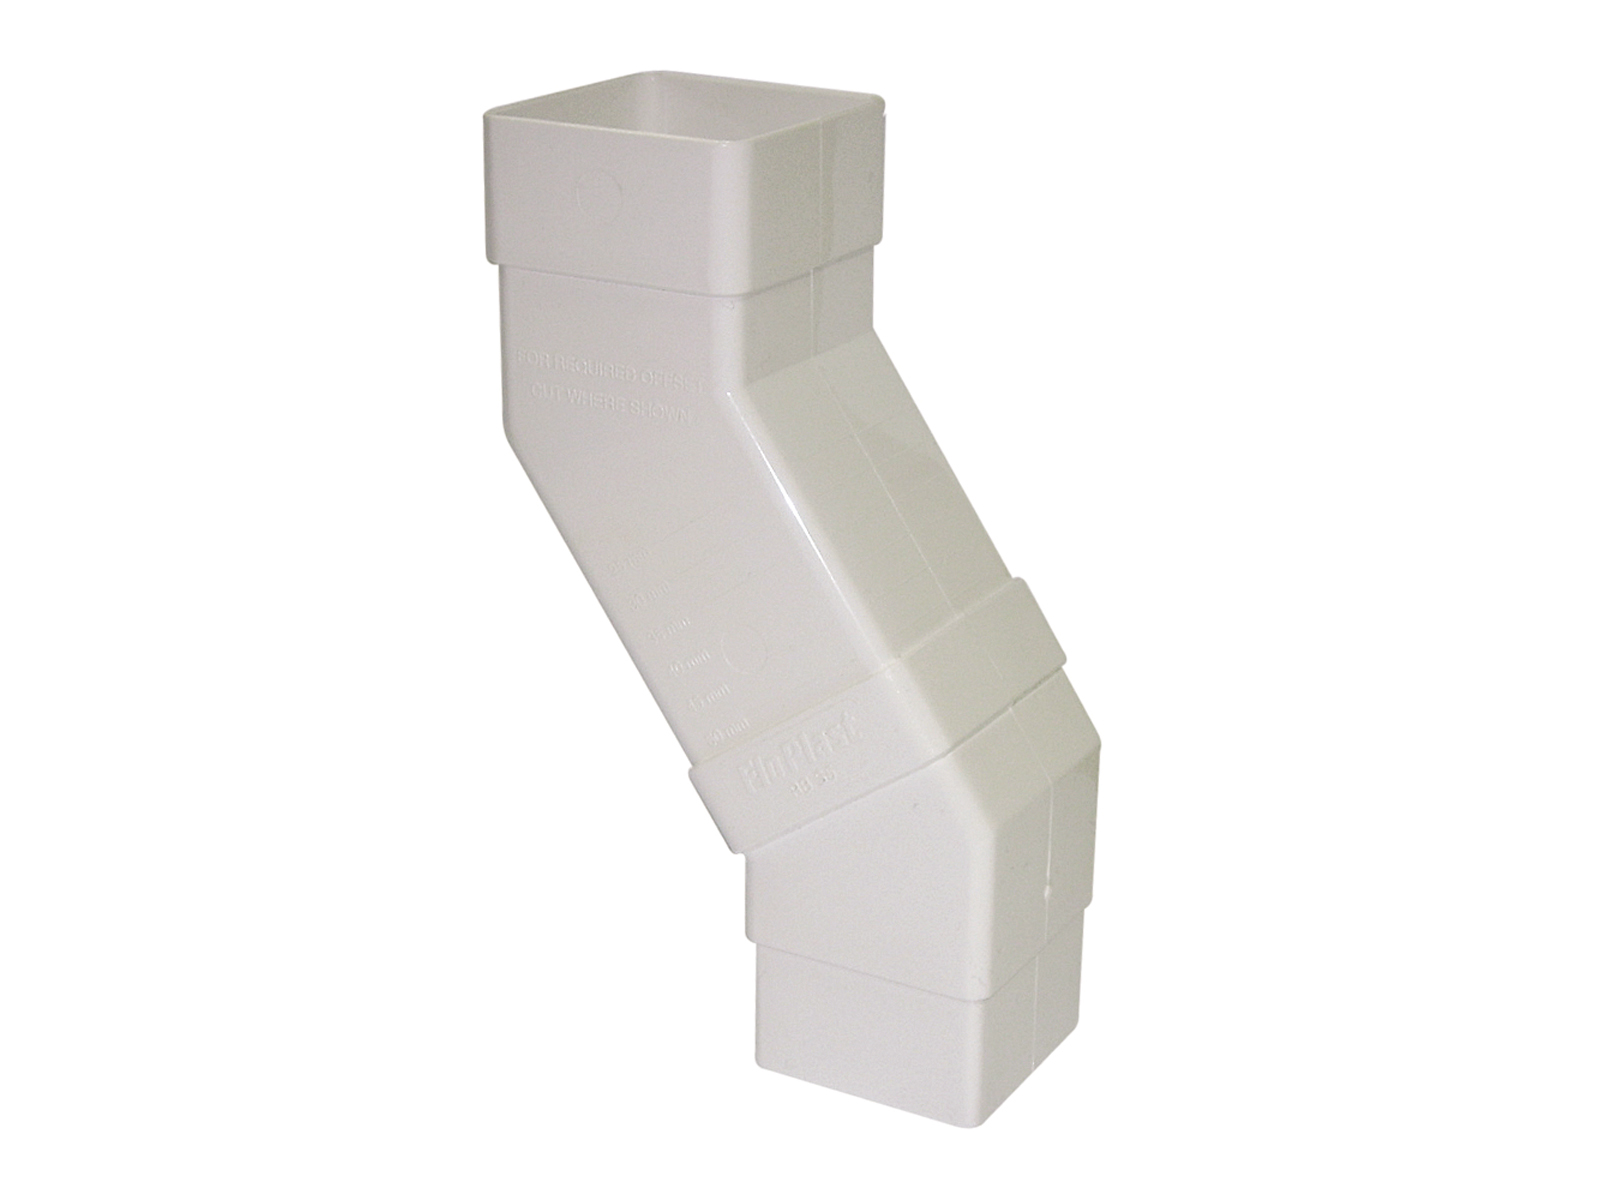 FLOPLAST RBS5WH 65MM SQUARE DOWNPIPE - ADJUSTABLE OFFSET BEND - WHITE